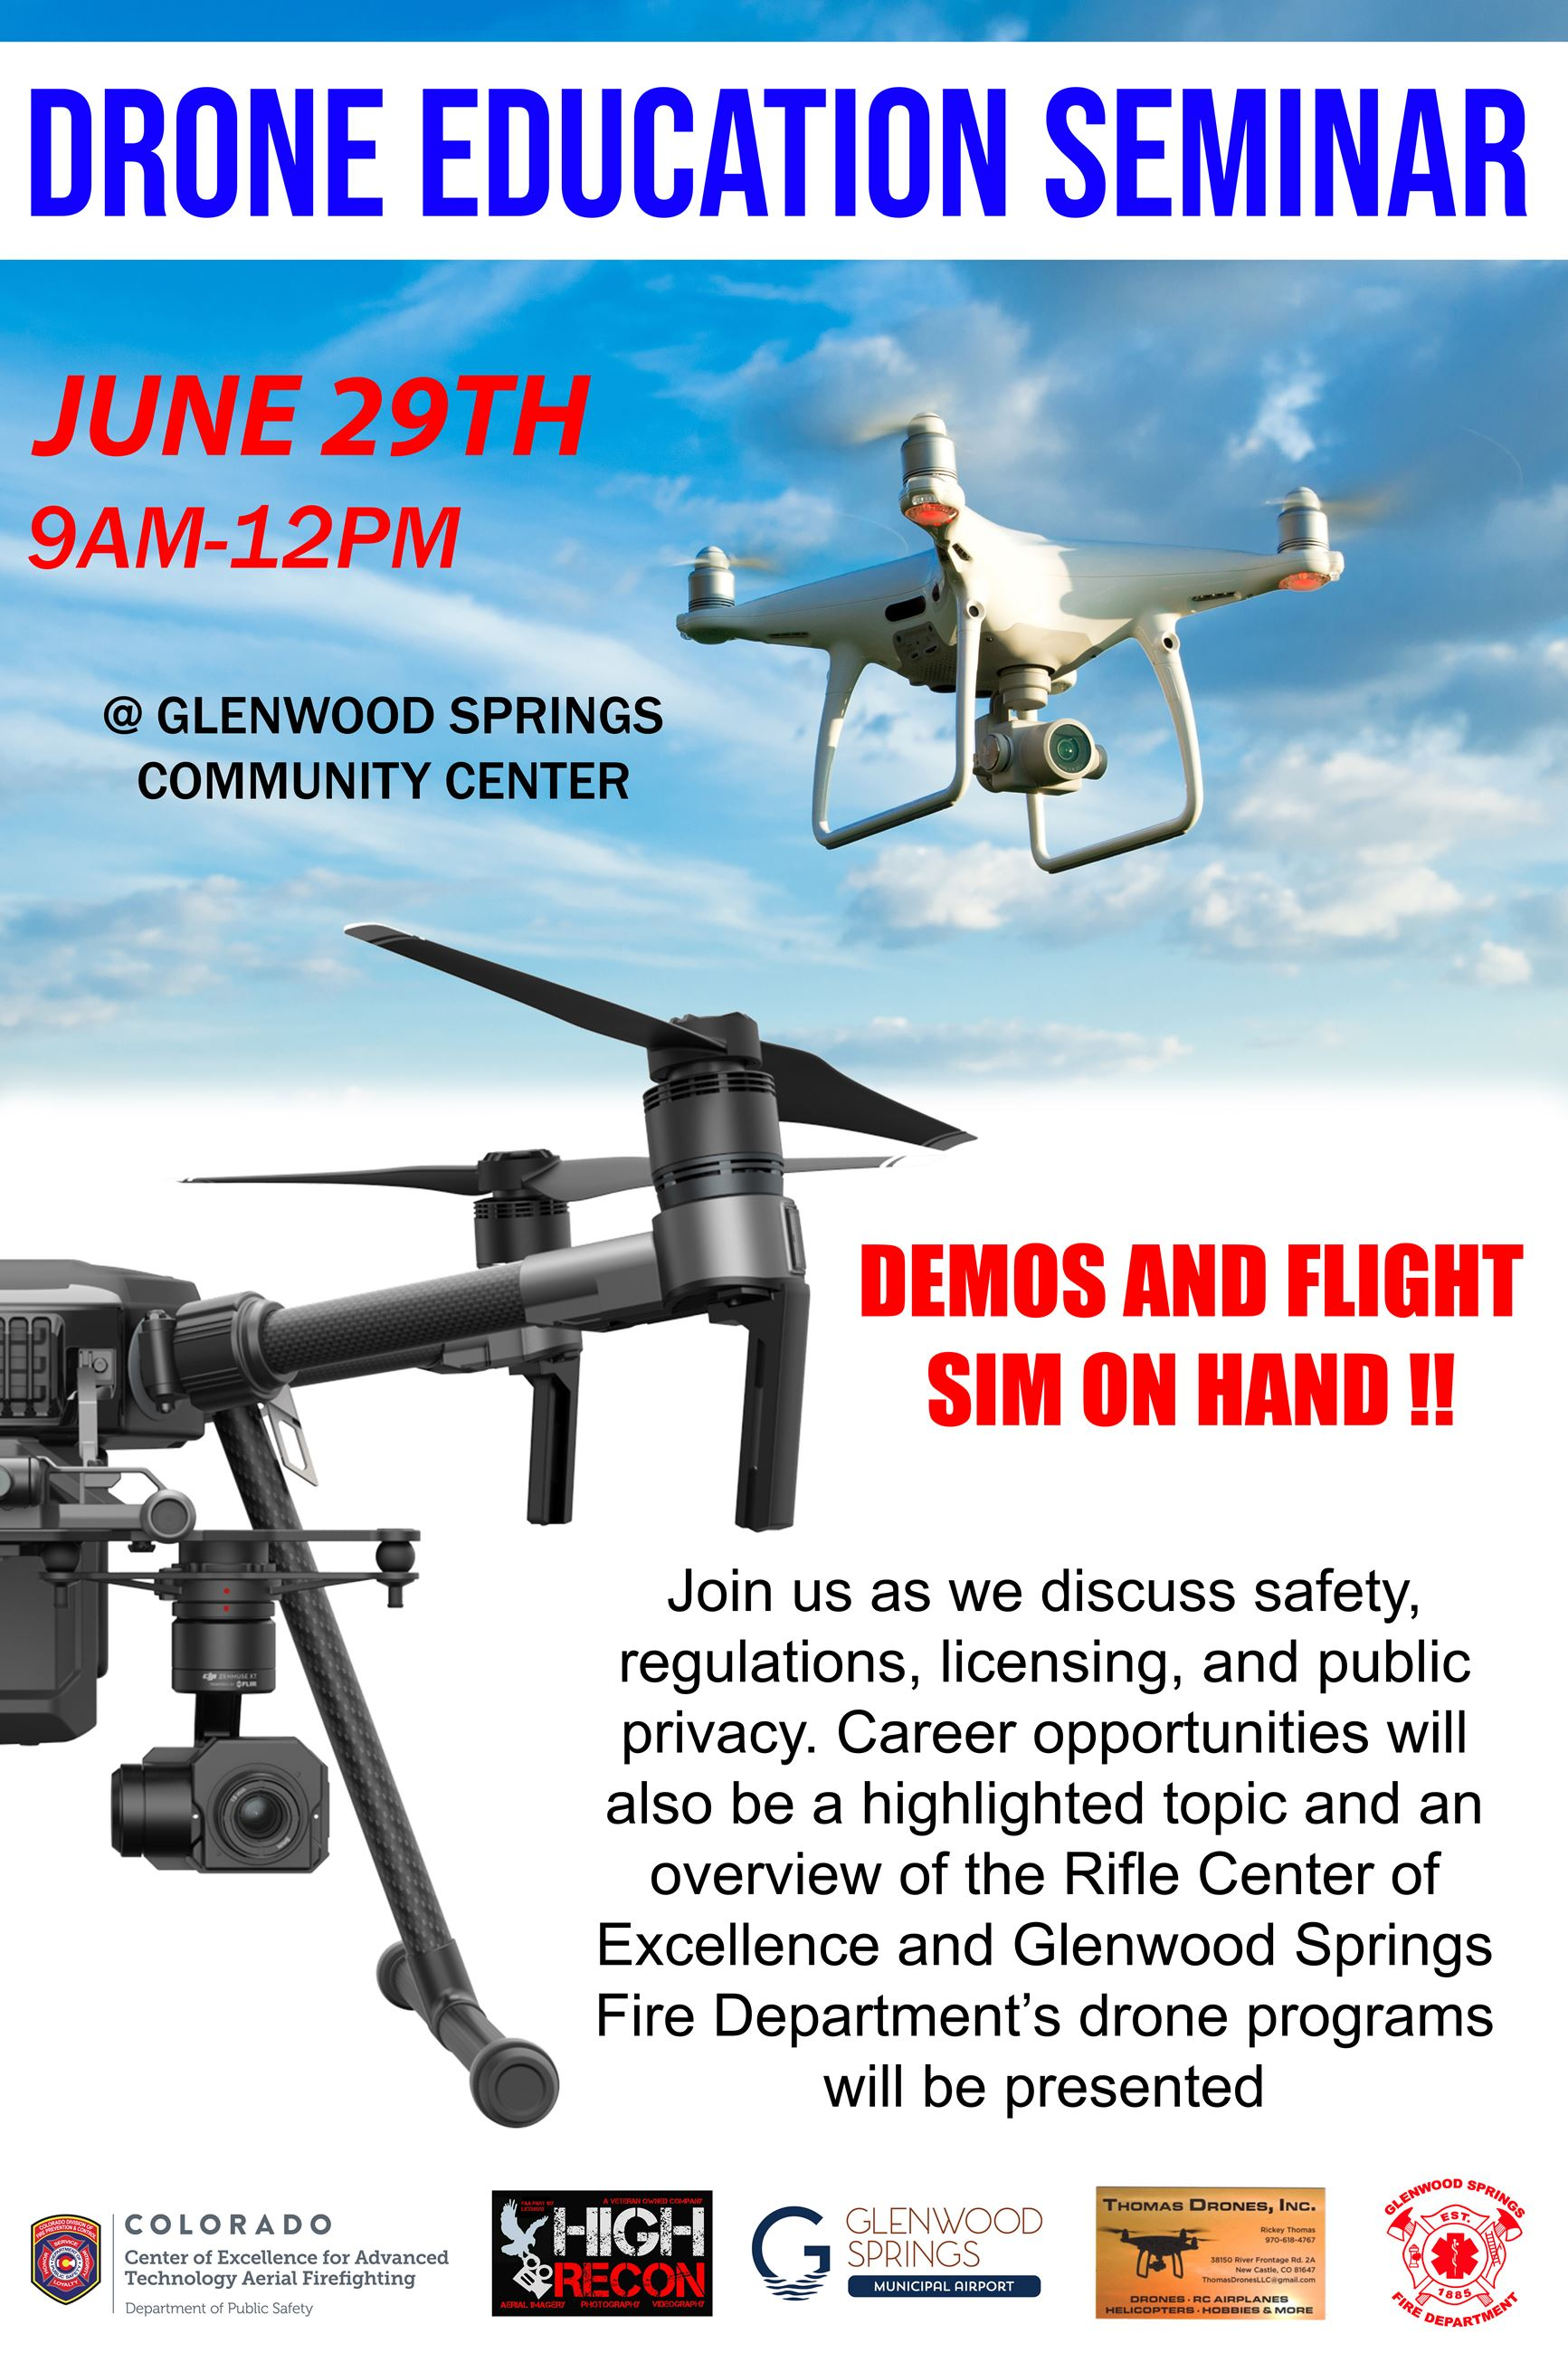 DRONE EDUCATION SEMINAR Poster